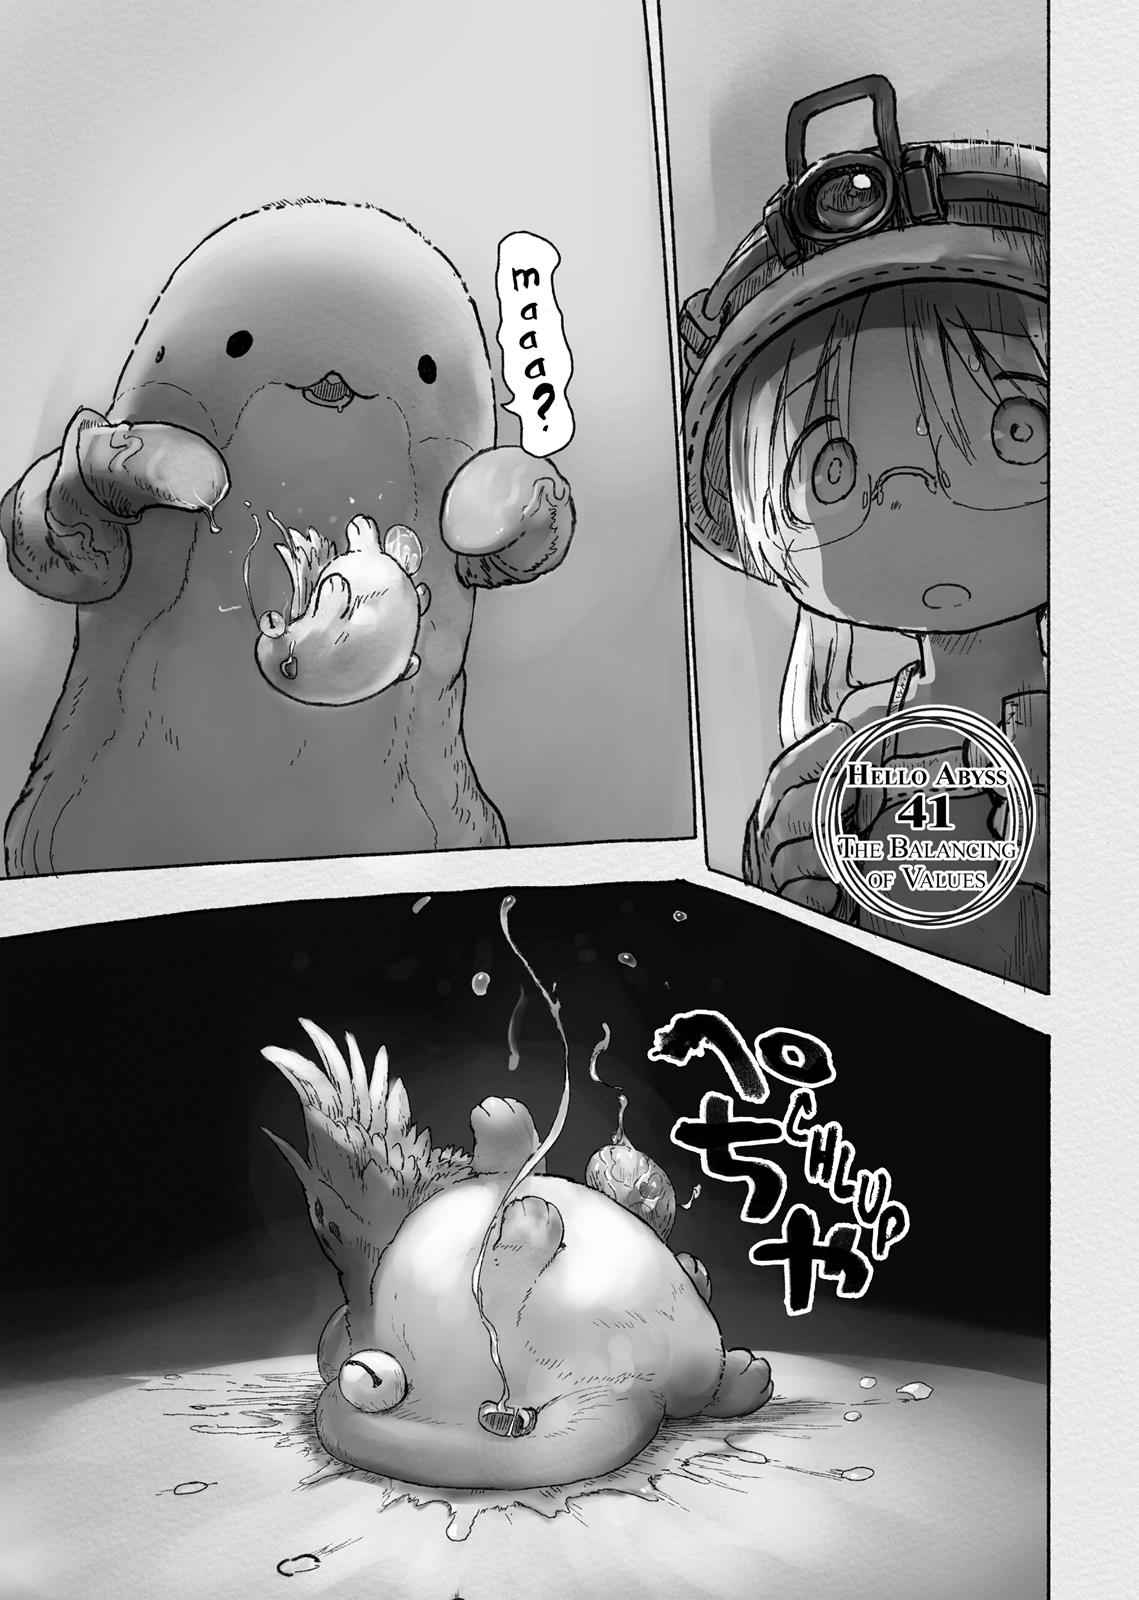 Made in Abyss Chapter 41 Page 1